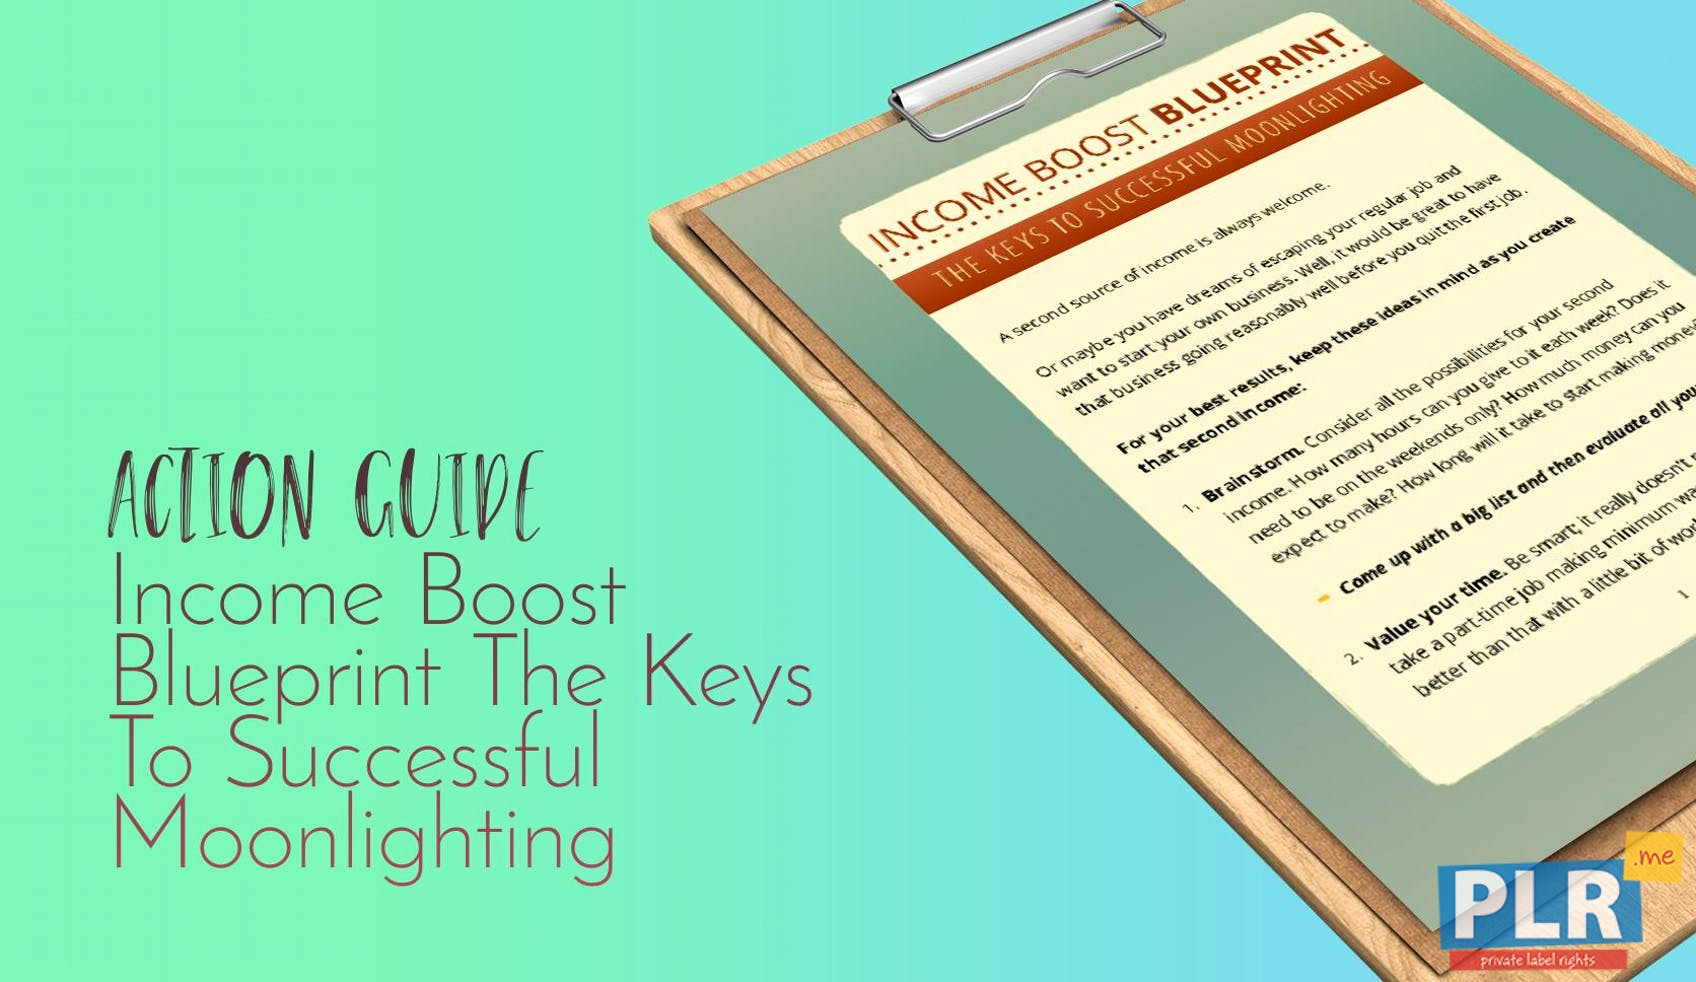 Income Boost Blueprint The Keys To Successful Moonlighting